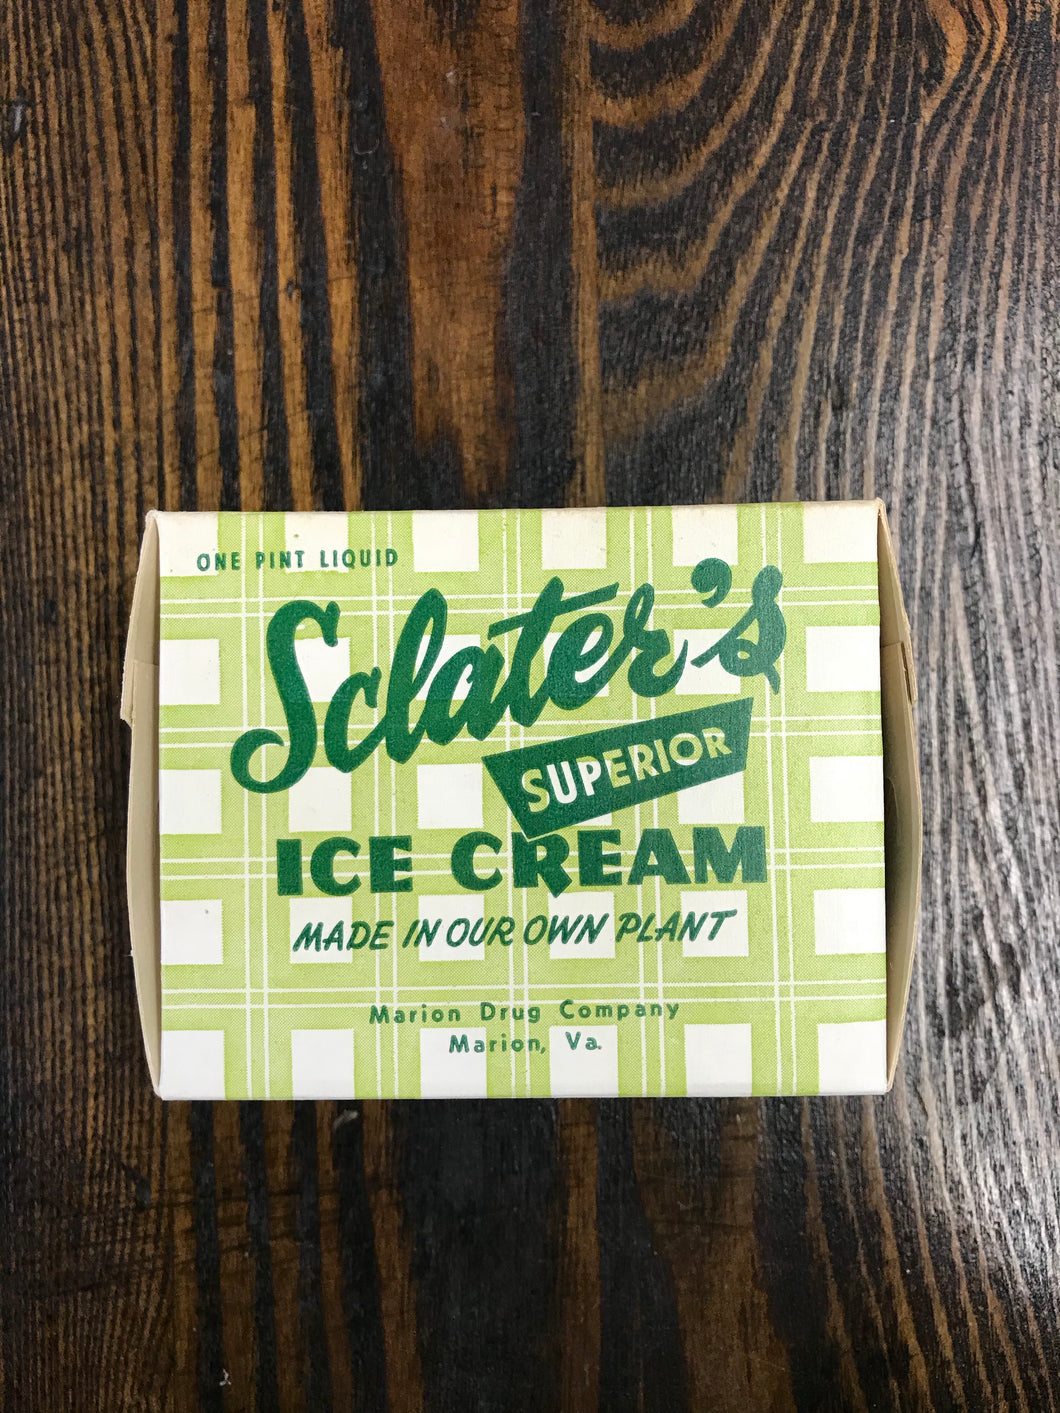 Vintage Sclater's Superior Ice Cream Packaging - TheBoxSF